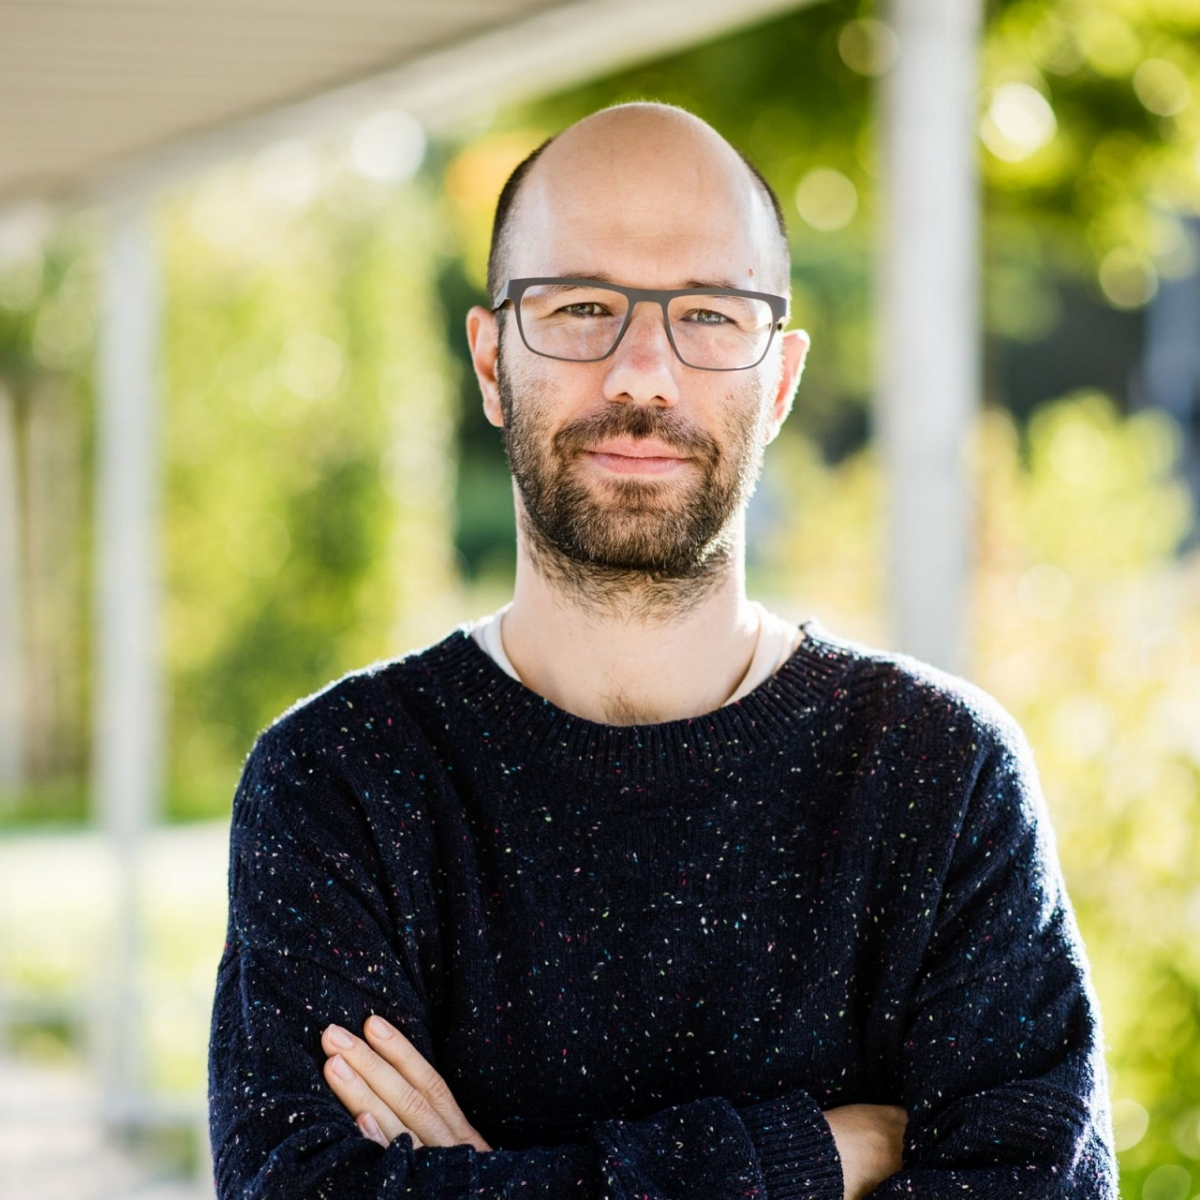 Image of Benedikt Gross.